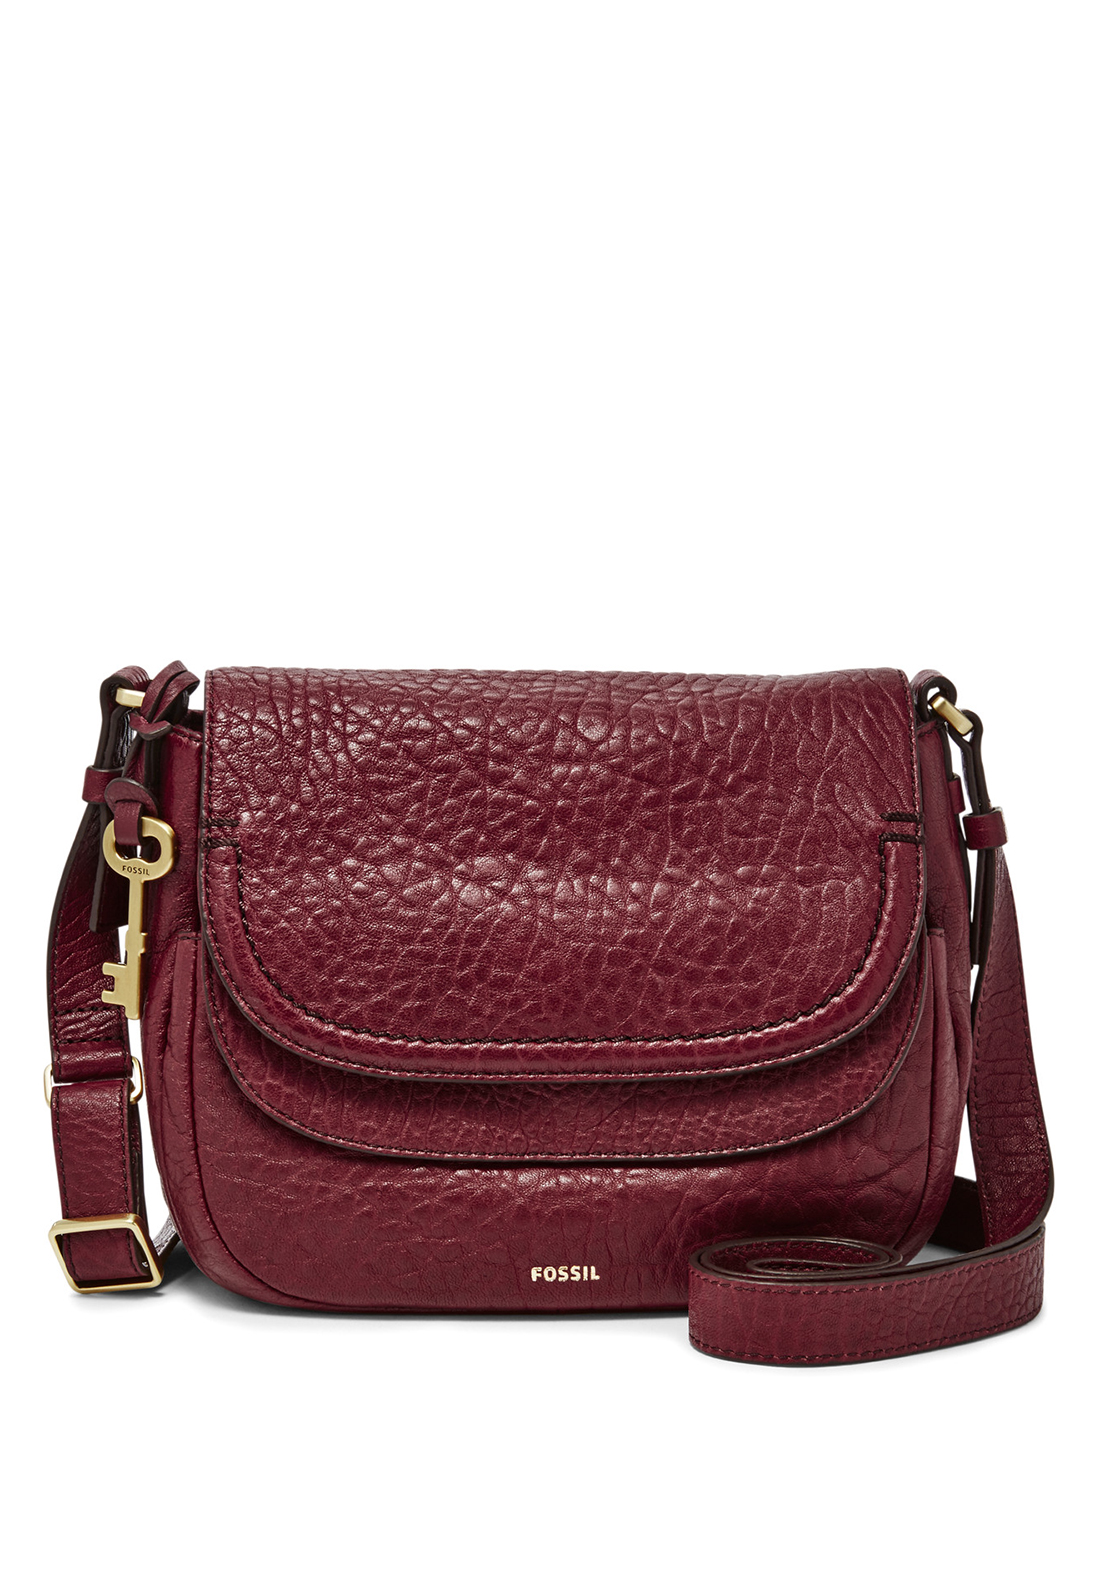 Fossil Peyton Pebbled Leather Double Flap Crossbody Bag, Wine